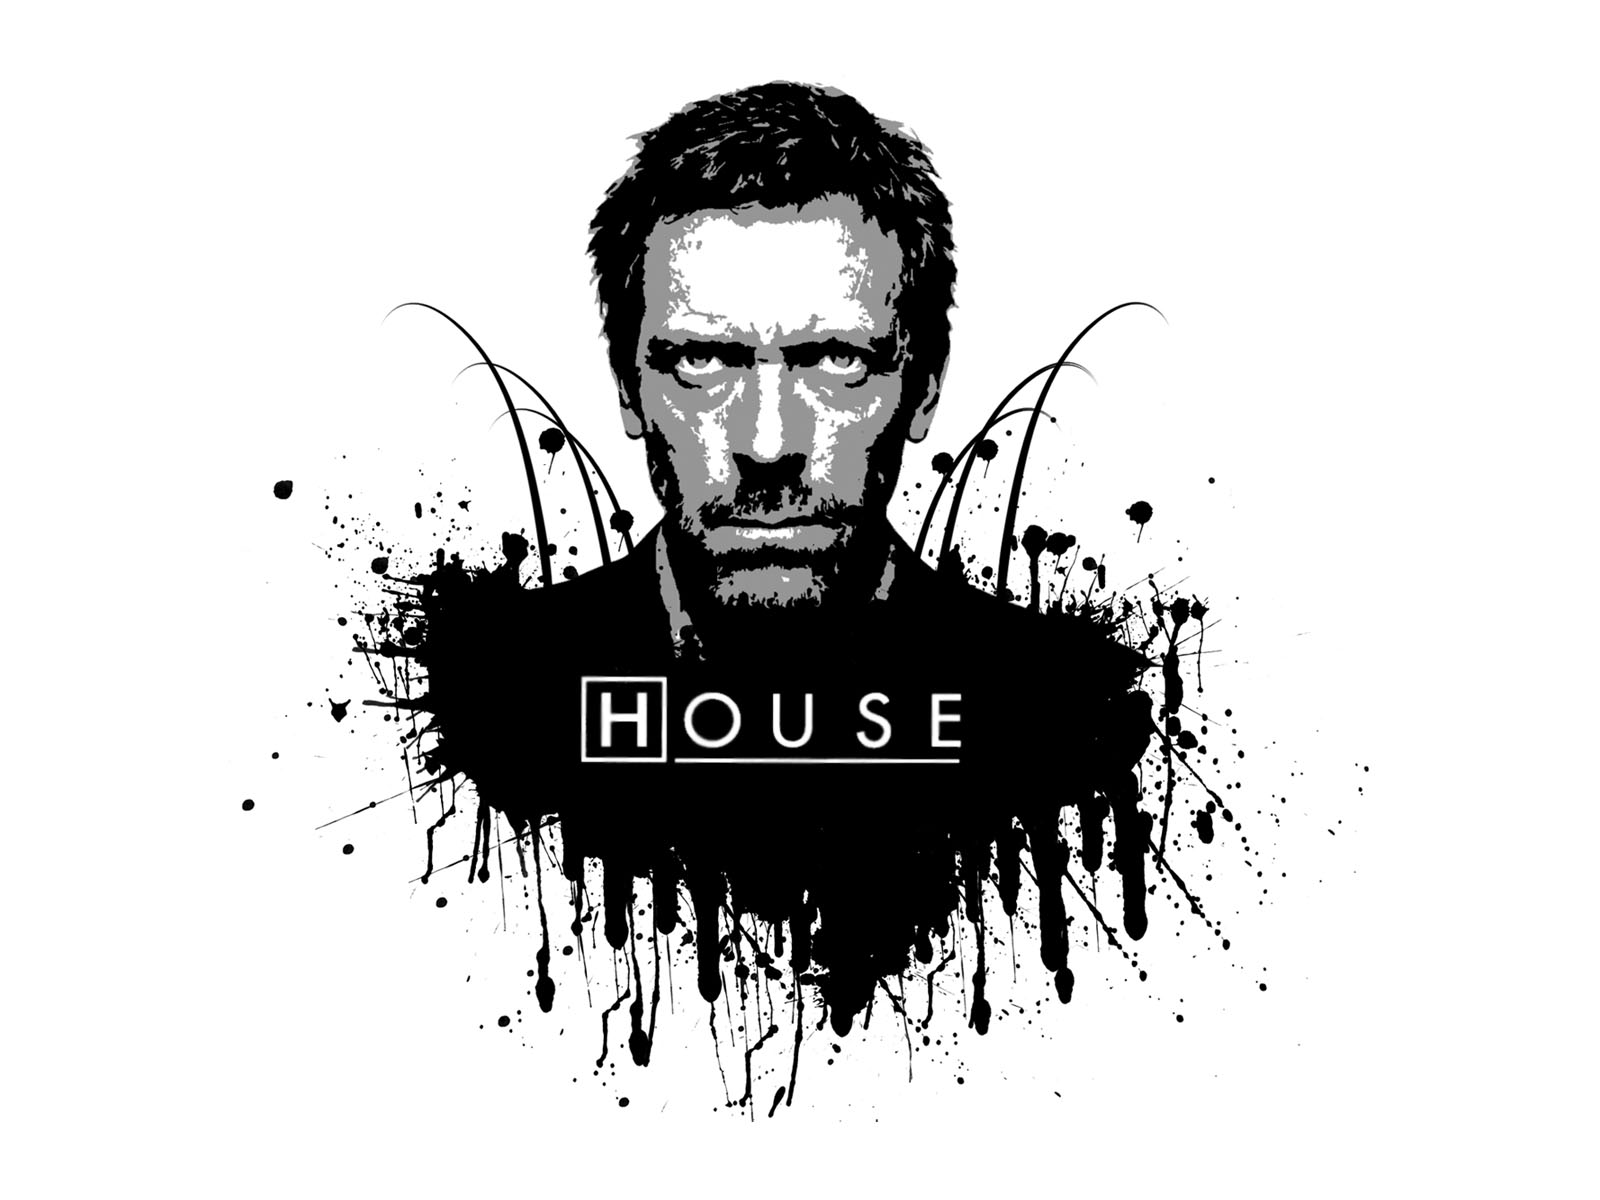 wallpapers of Dr House You are downloading Dr House wallpaper 1 1600x1200